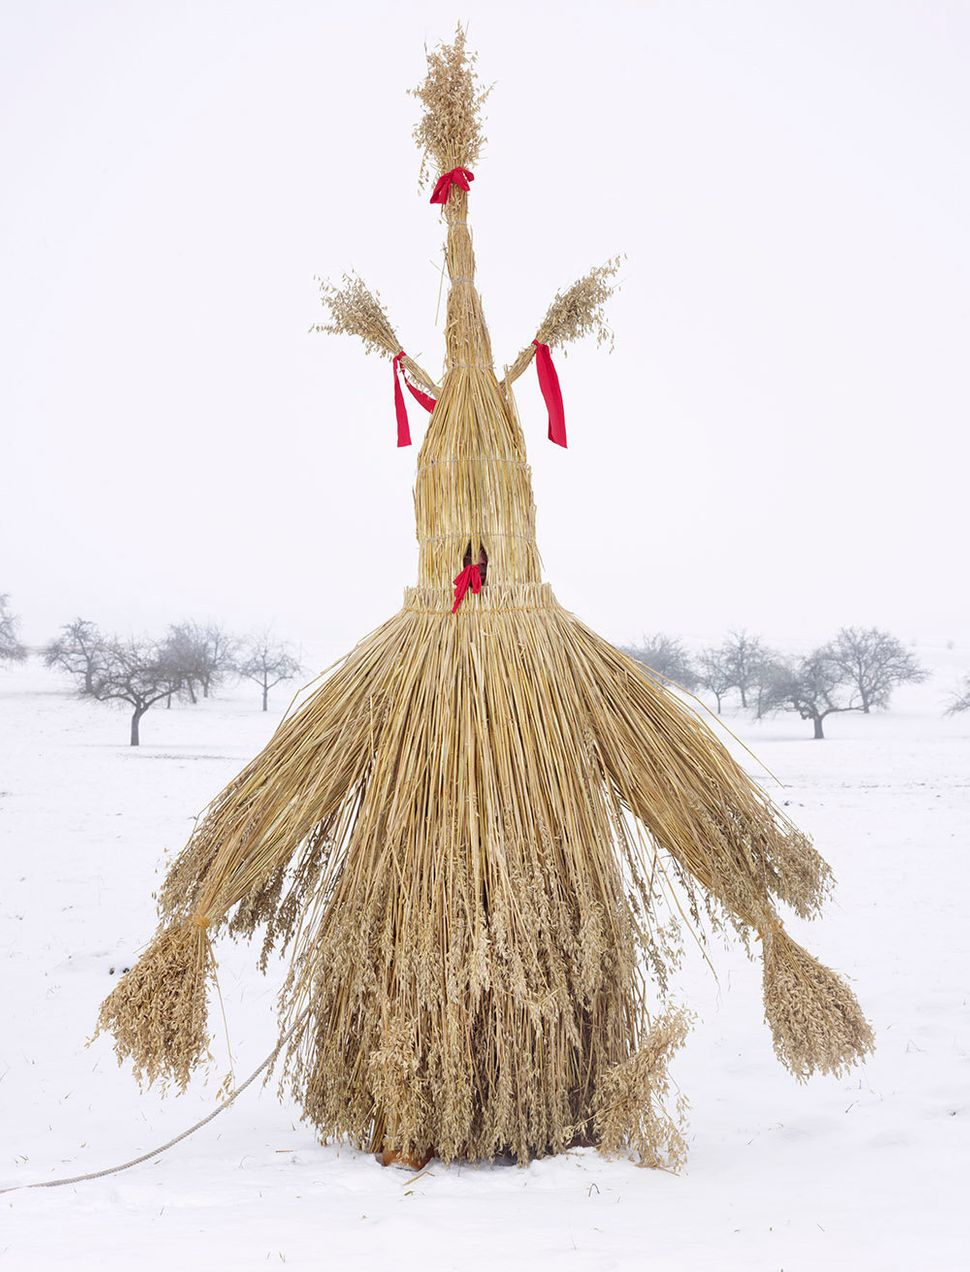 Charles Fréger From the series Wilder Mann Strohmann (Straw Man), Leipferdingen, Germany, 2010-2011 Inkjet Print © Charles Fr